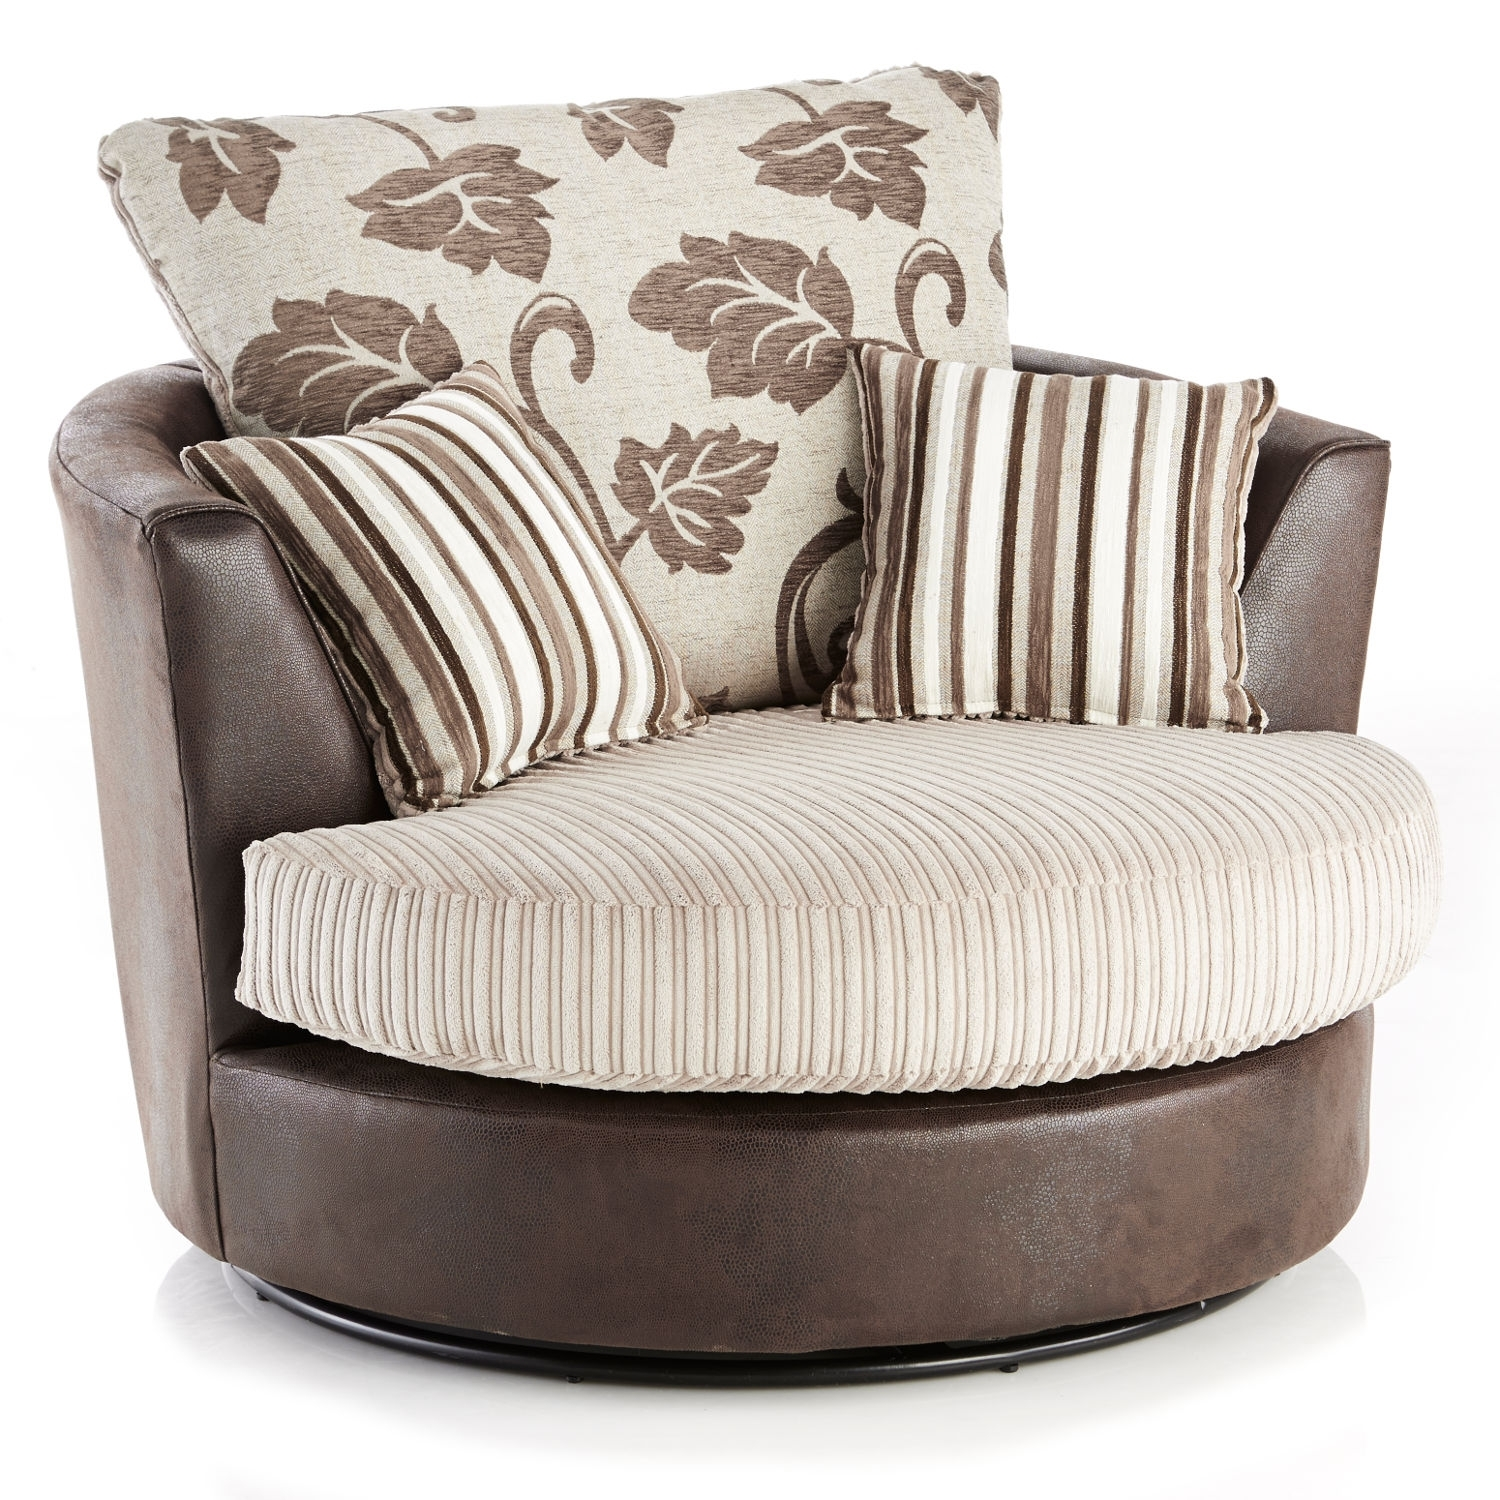 revolving chair with net design for debut 10 inspirations sofas swivel sofa ideas